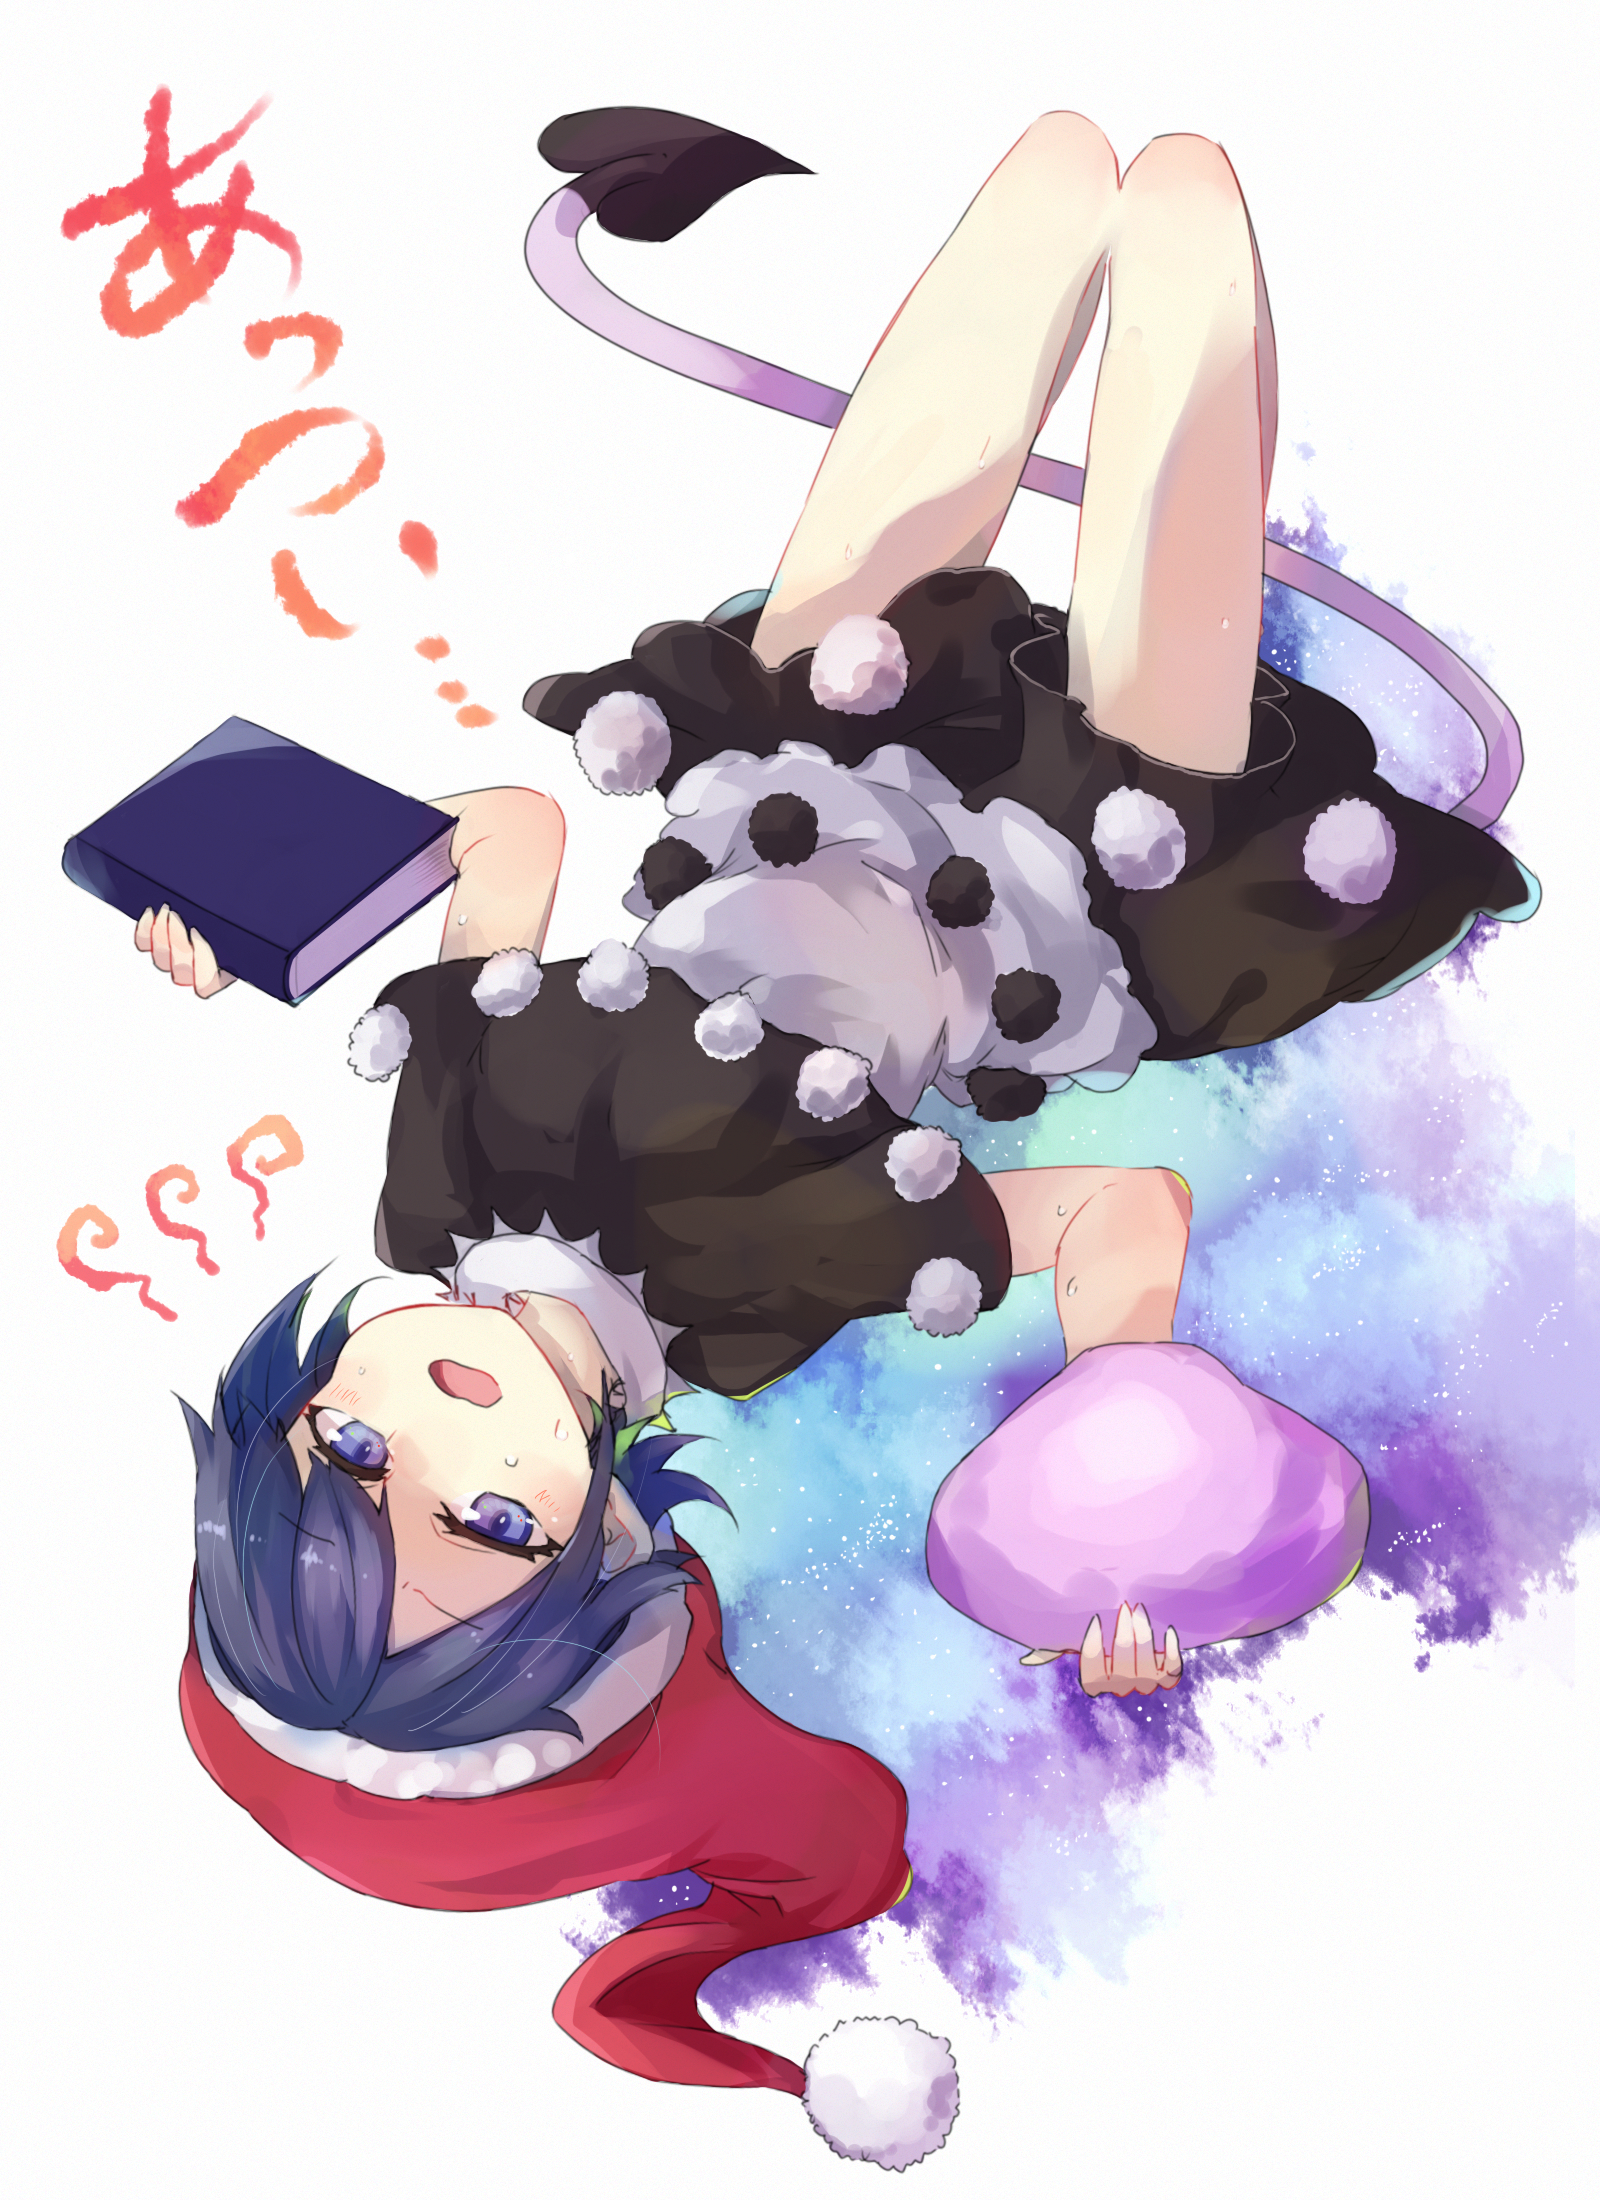 Most Inspiring Wallpaper Mobile Sweet - Doremy  Perfect Image Reference_457874.jpg